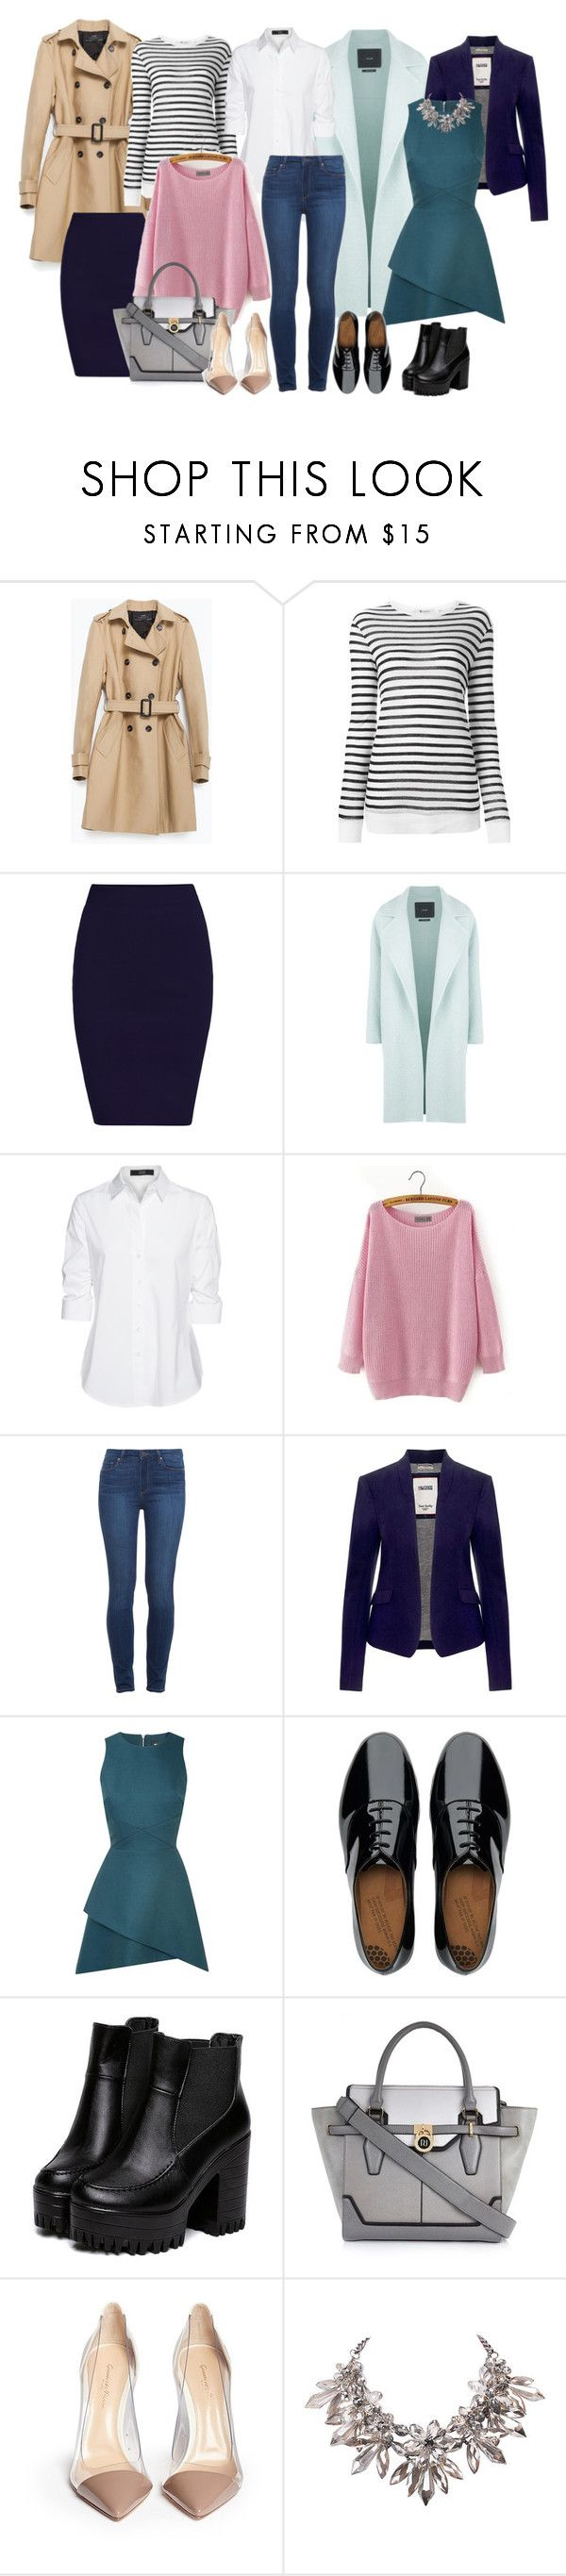 """капсульный гардероб на осень"" by vajnaluba ❤ liked on Polyvore featuring Zara, Alexander Wang, MaxMara, Steffen Schraut, Paige Denim, Tommy Hilfiger, Rebson, FitFlop, River Island and Gianvito Rossi"